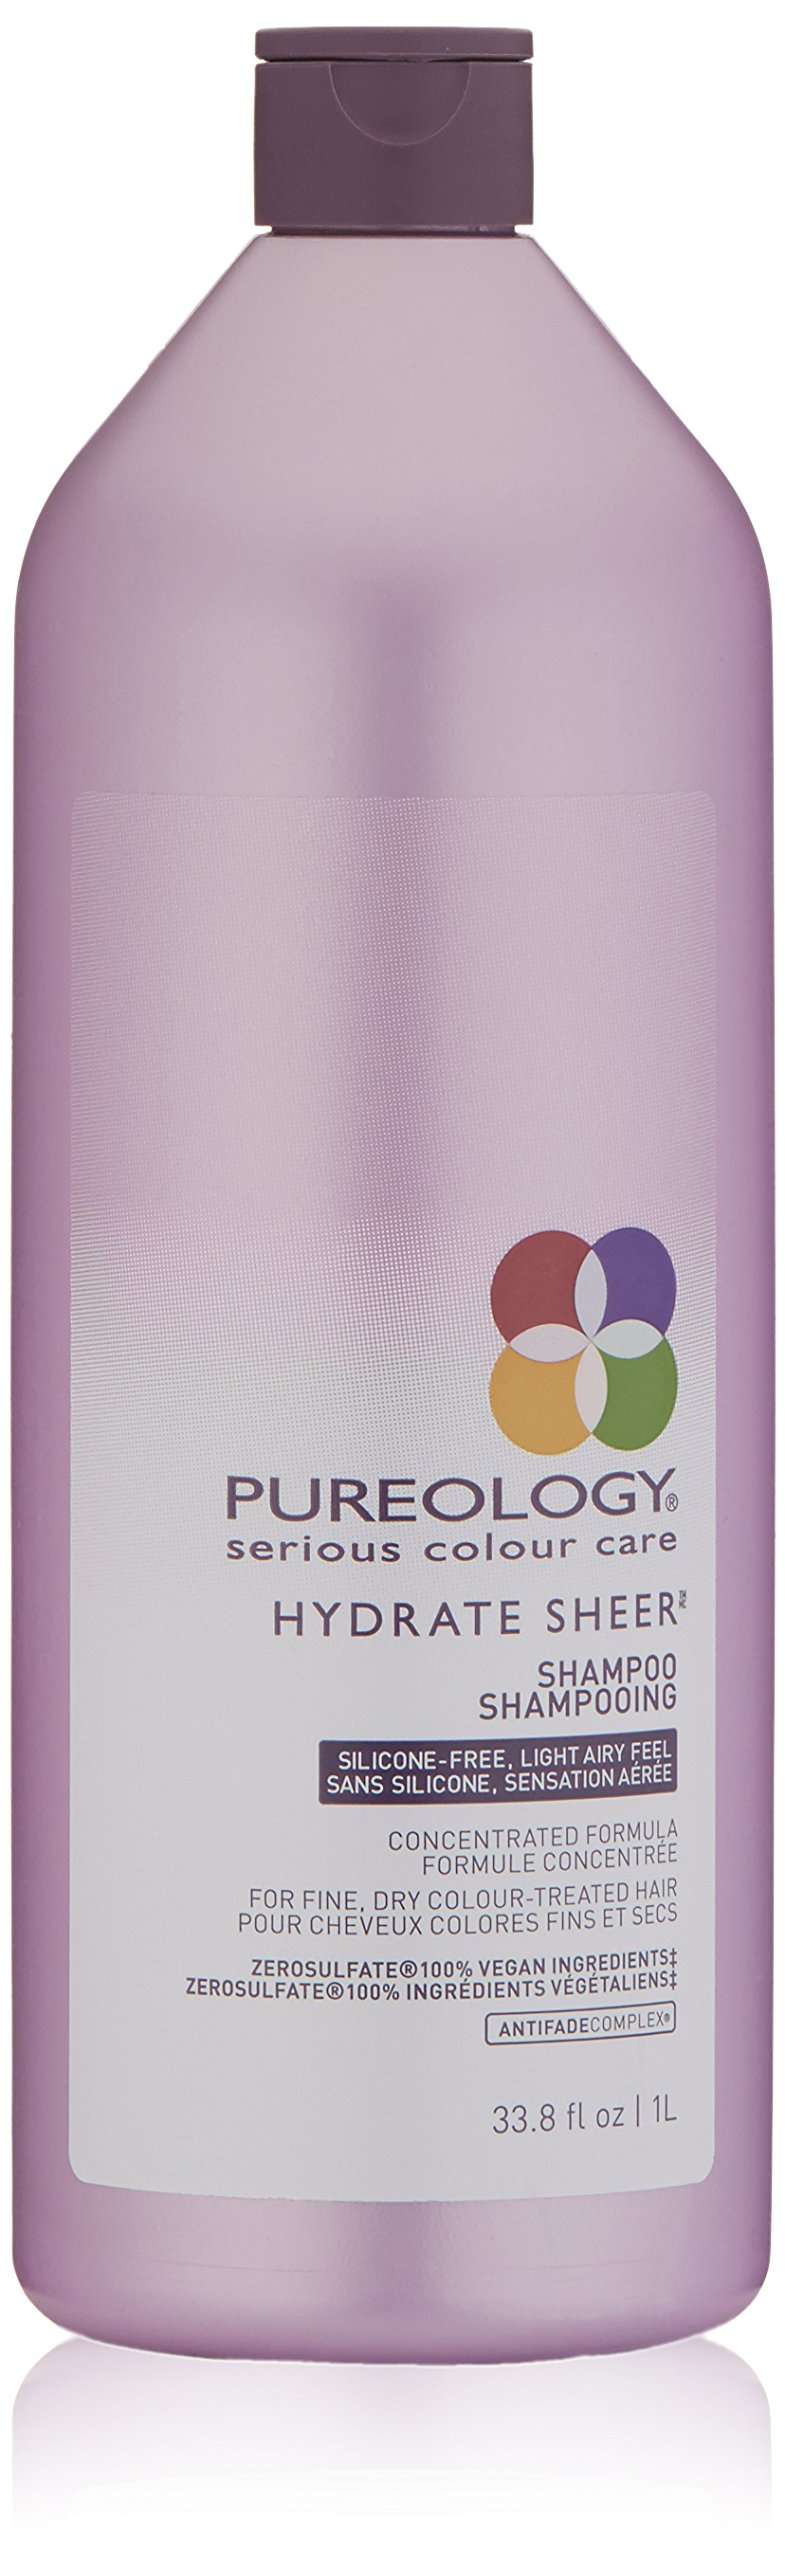 Pureology Hydrate Sheer Moisturizing Shampoo for Color Treated Hair, Sulfate-Free, Silicone-Free, 33.8 fl. oz. by Pureology